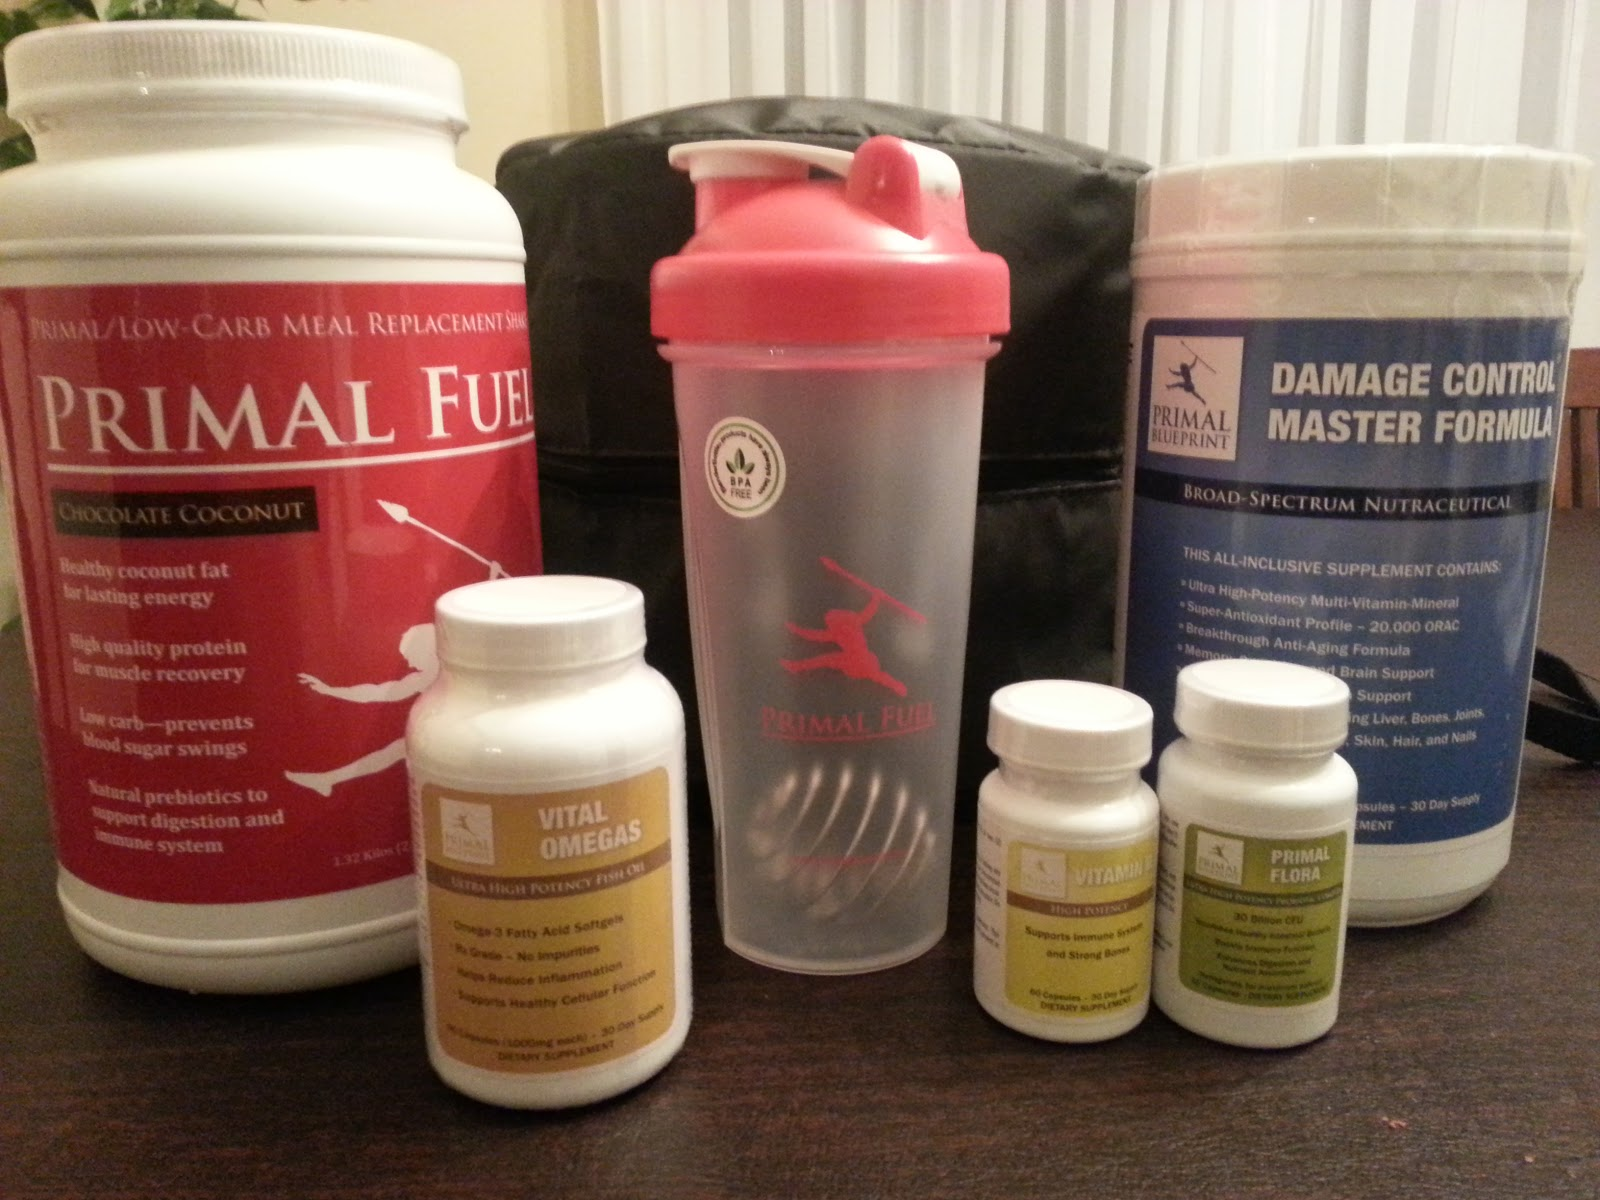 Hunter gatherer runner primal blueprint supplement preview the line up includes a 30 day supply of each primal fuel damage control master formula vitamin d vital omegas and primal flora malvernweather Image collections